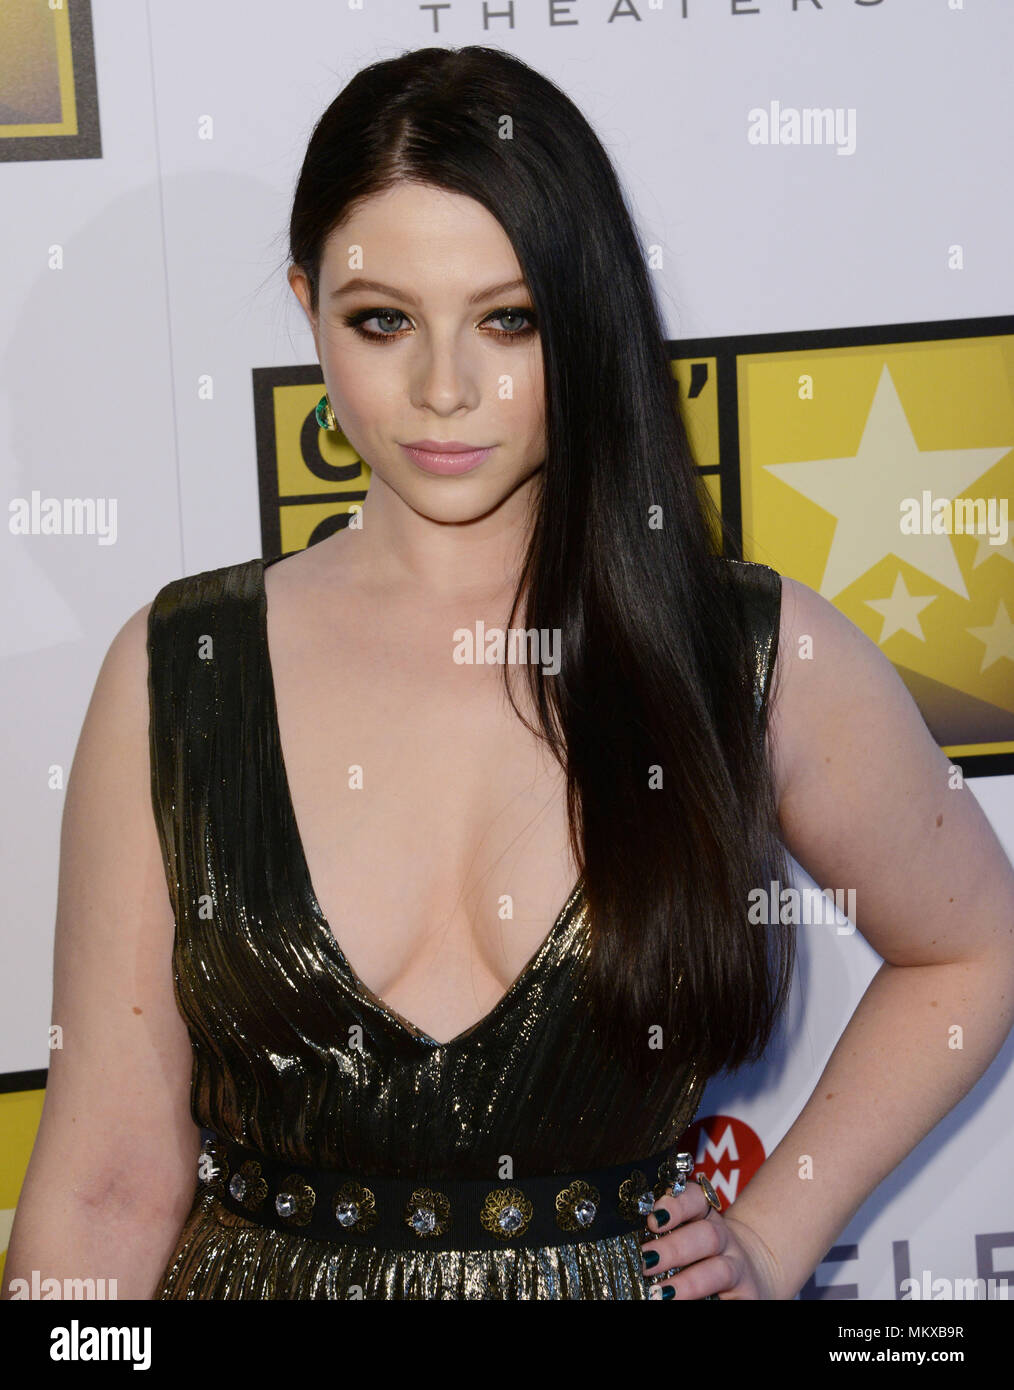 butt Celebrity Michelle Trachtenberg naked photo 2017